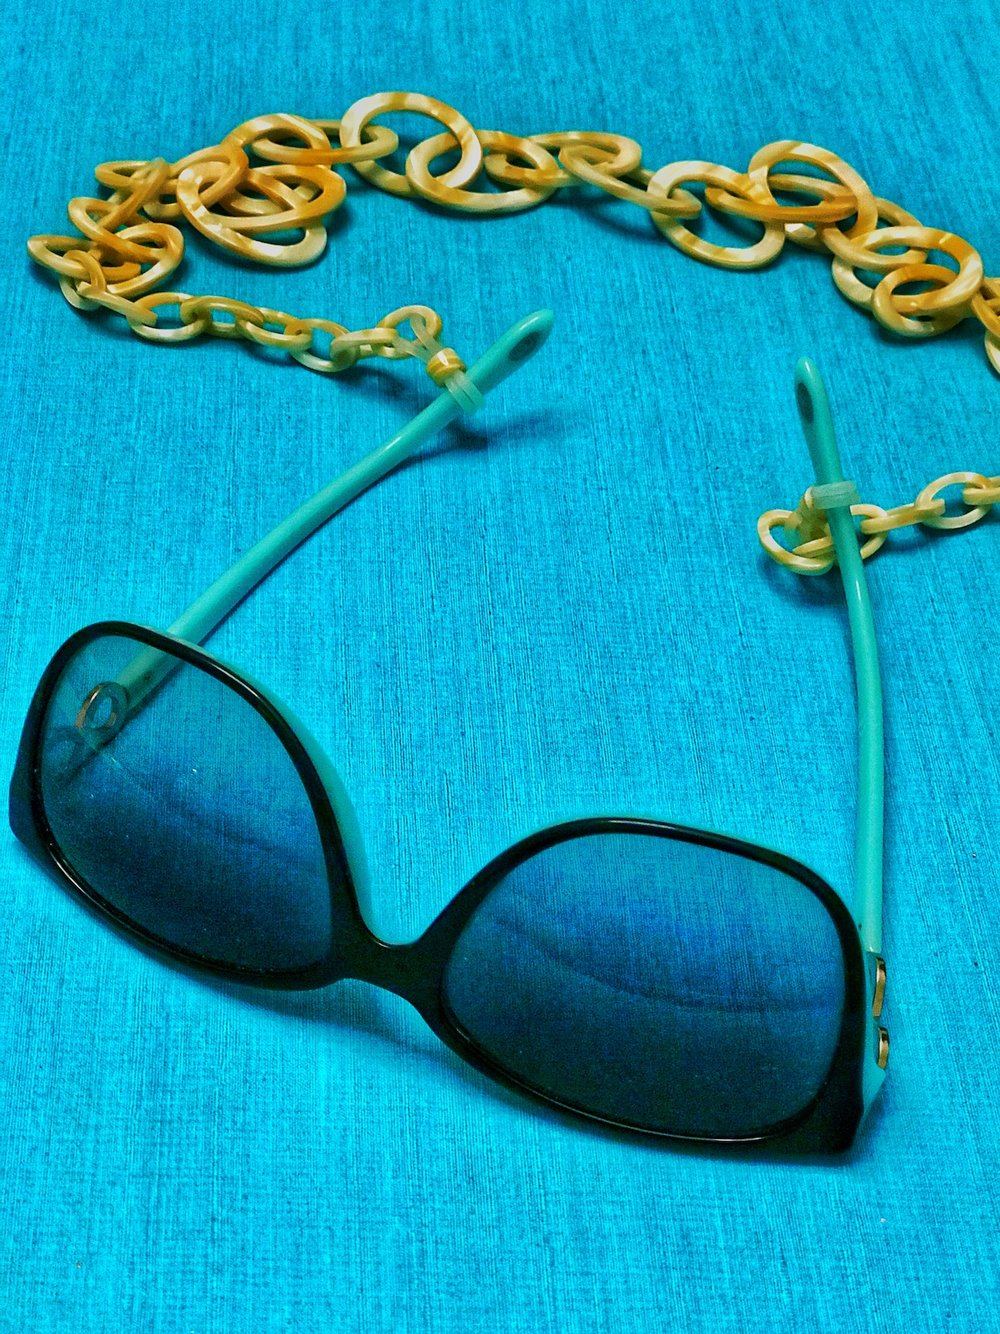 Glasses Chain with Tiffany glasses. A Broad In London's Top Five Things of 2018